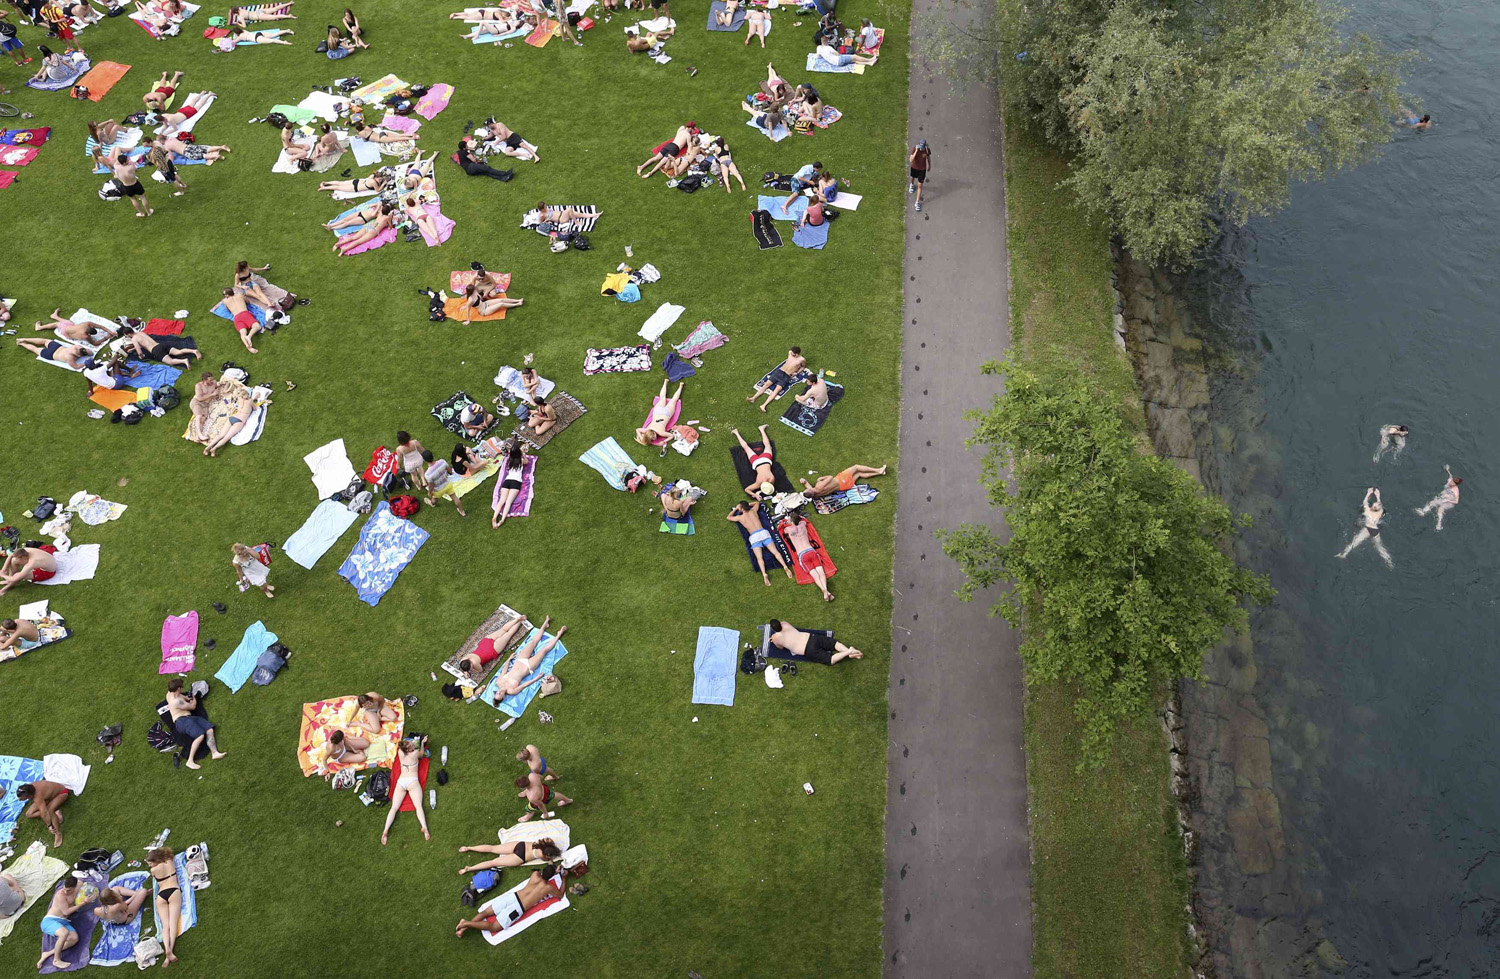 People sunbathe and swim in the river Aare on a hot summer day in Bern, Switzerland on June 7, 2014.